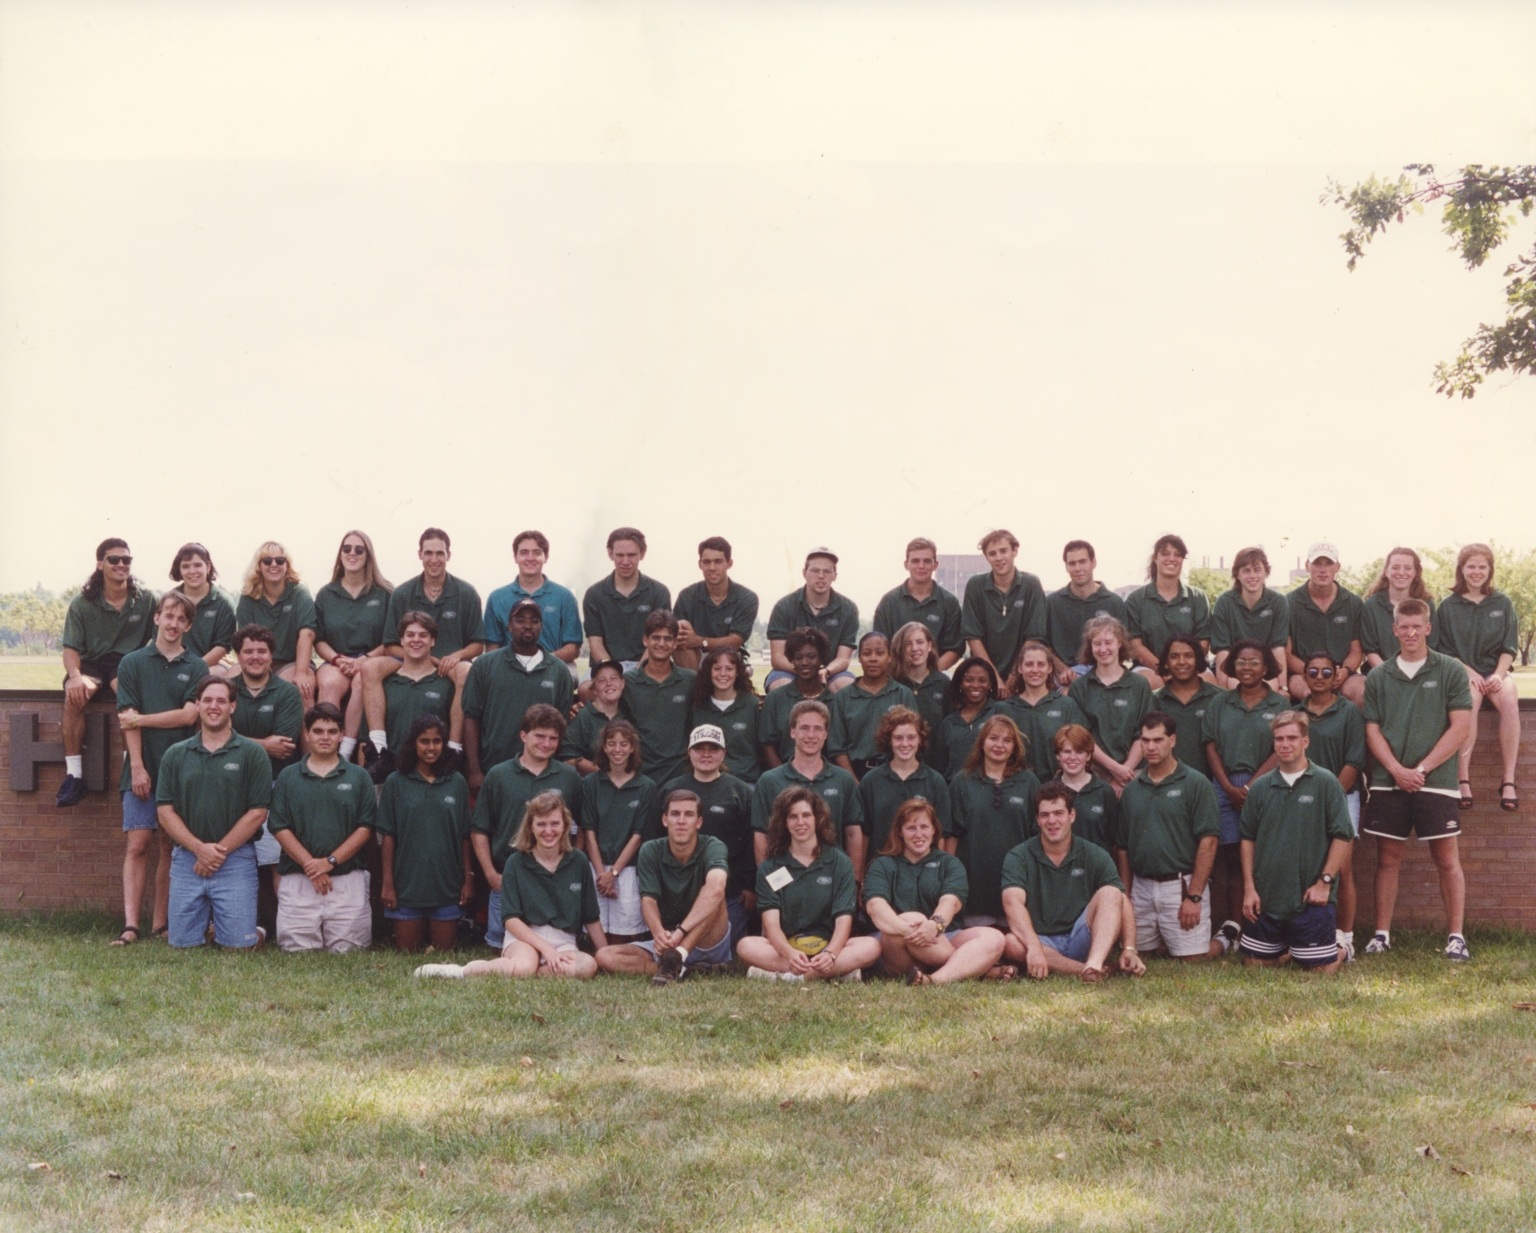 1995 Student Orientation Services Leaders